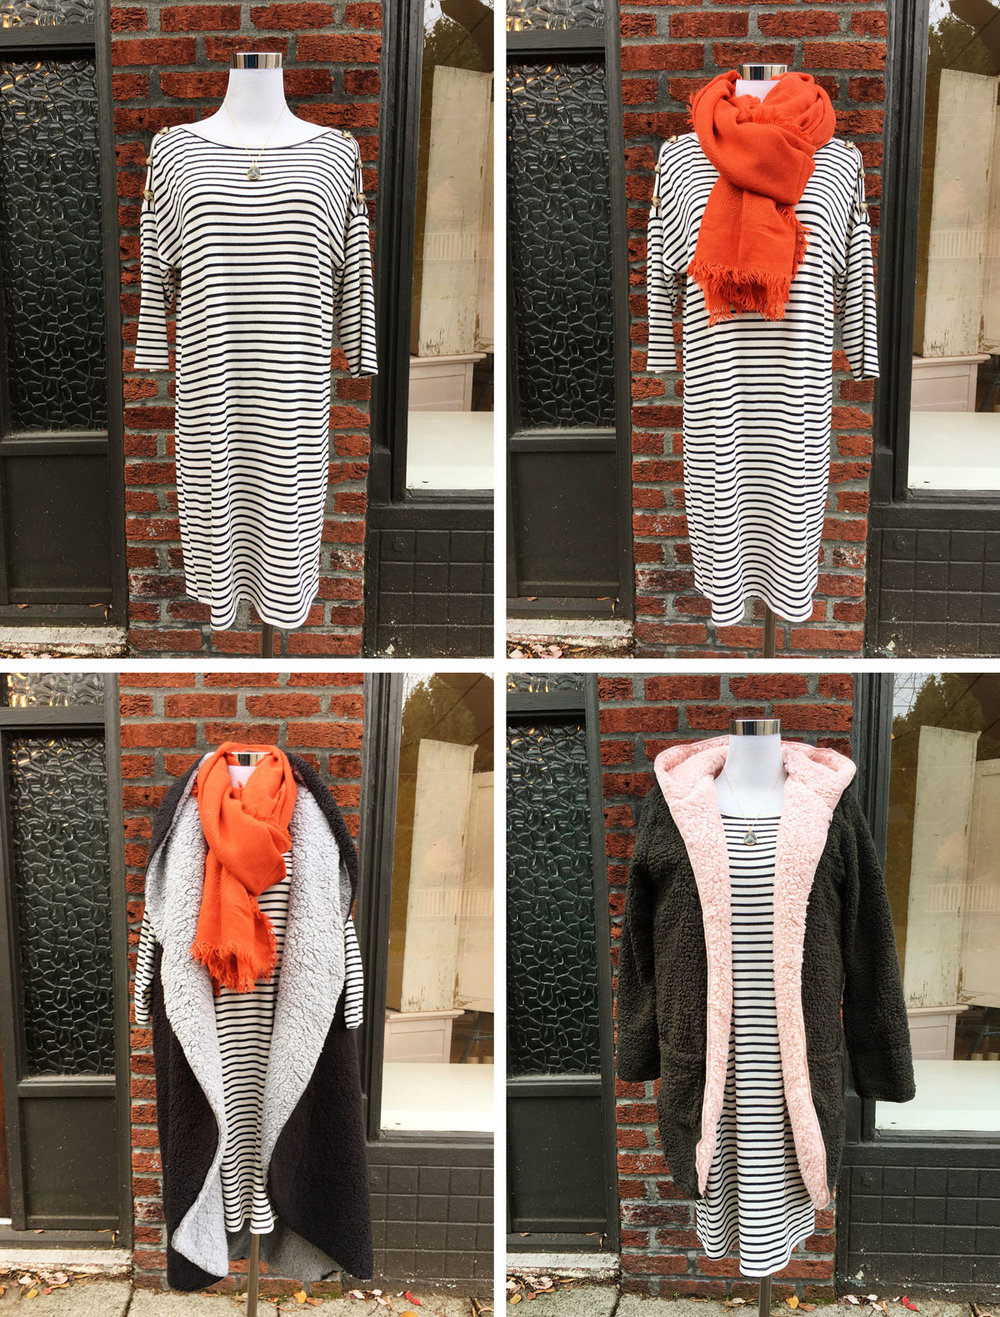 Four different ways to wear the same dress - check out all the fun items you can pair it with!